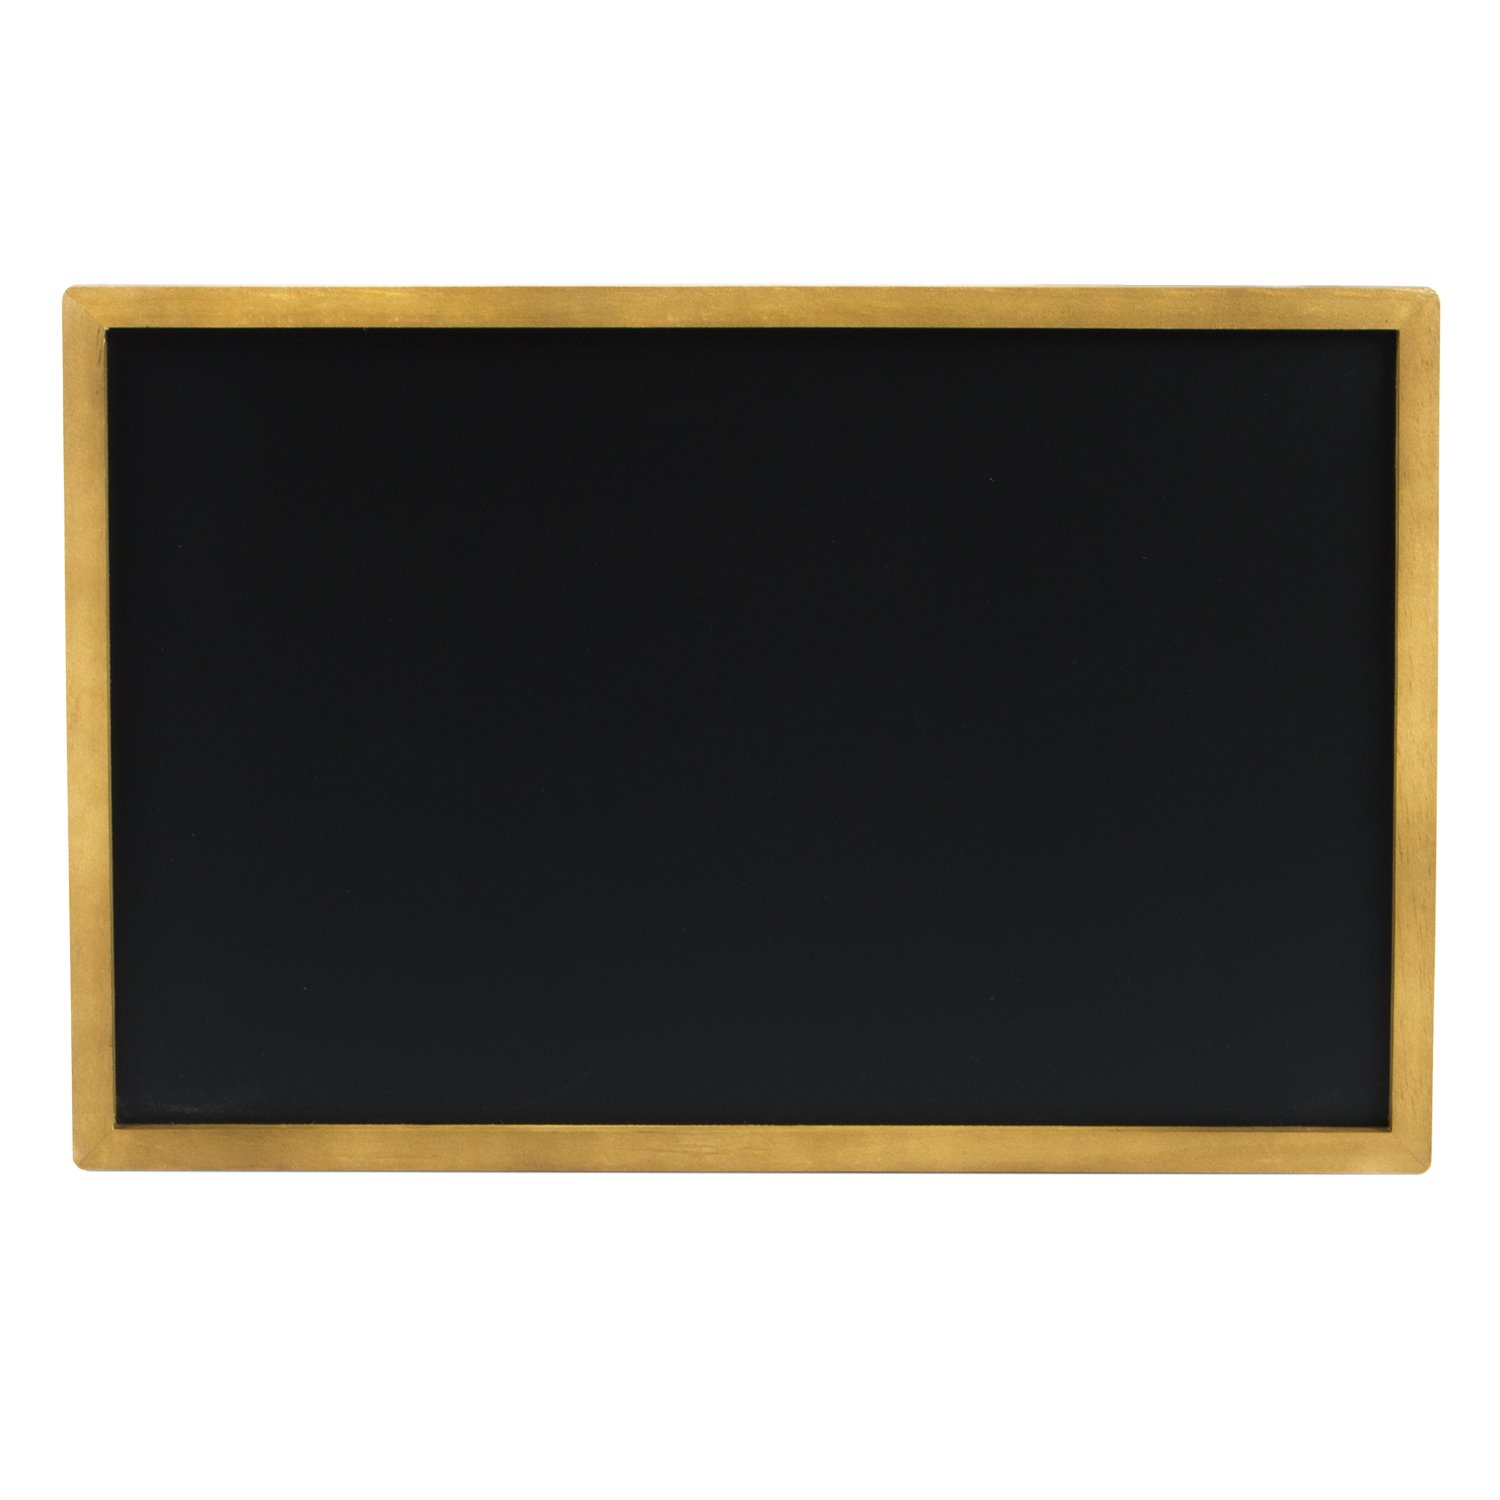 Porcelain Steel Magnetic Wall Mounted Chalkboard -17'' x 11'' with Circular Clip Hangers Dual Purpose Magnetic Signboard